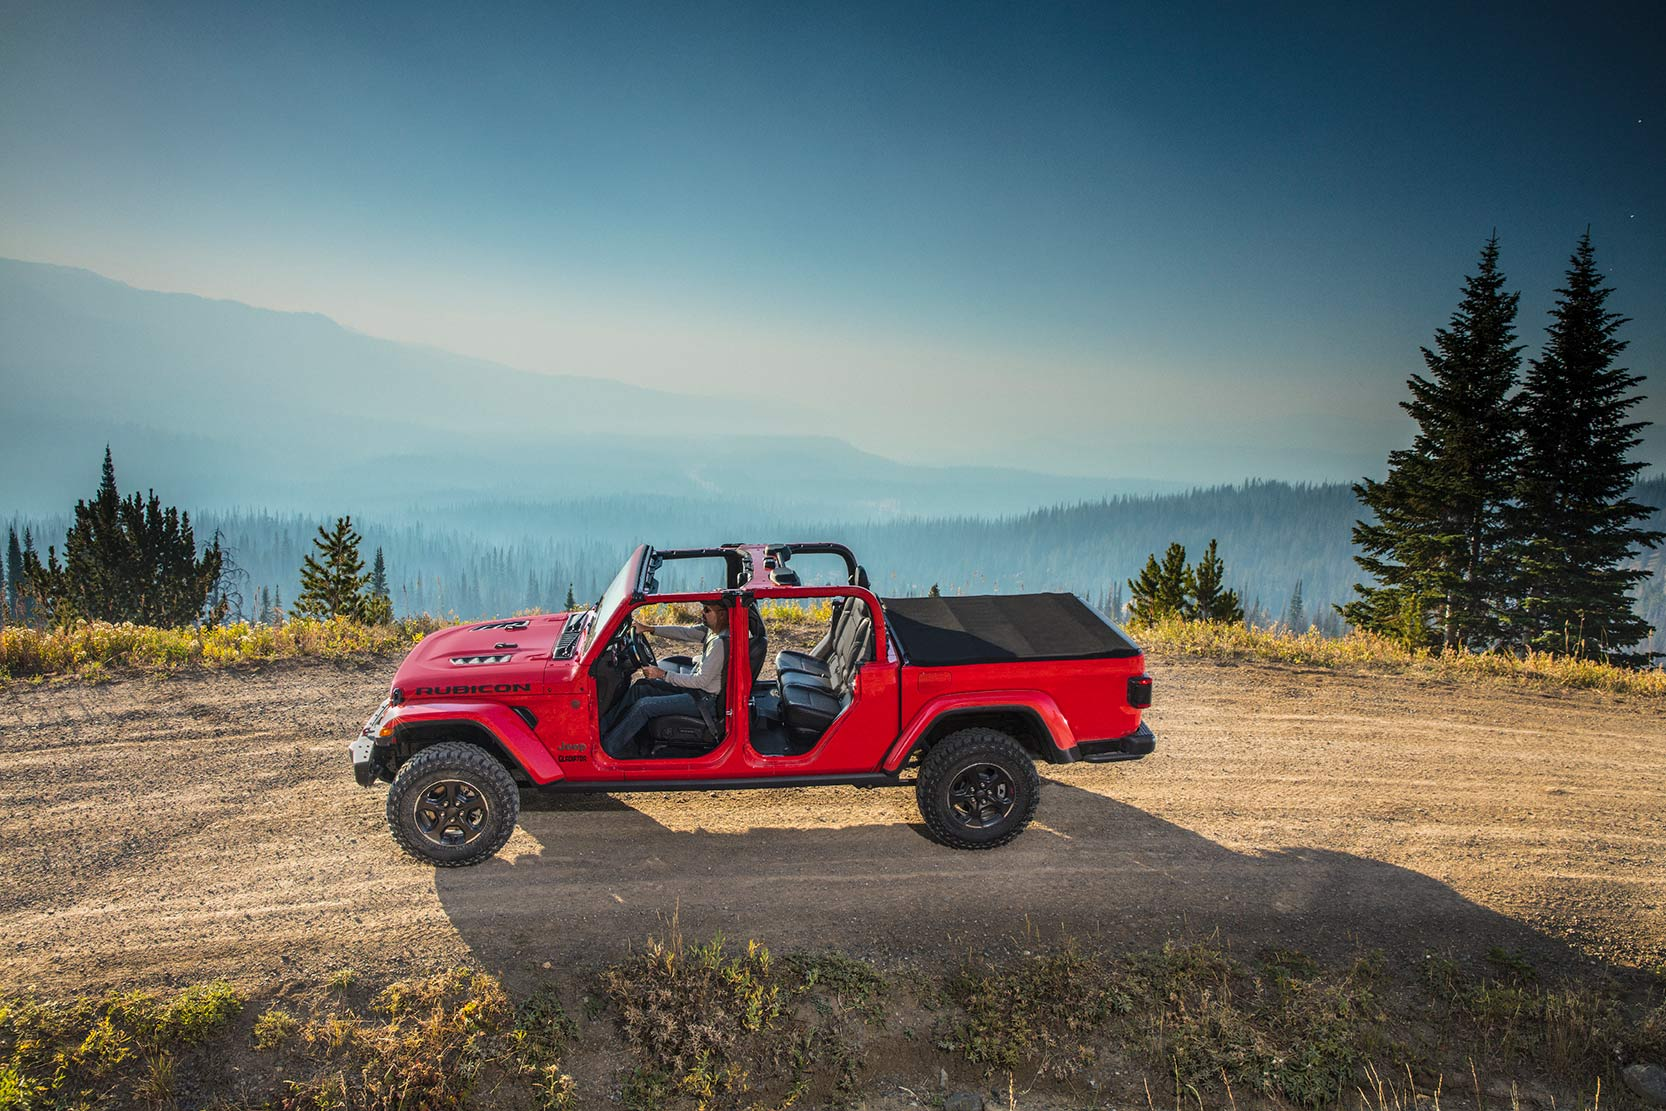 Exterieur_Jeep-Gladiator_31